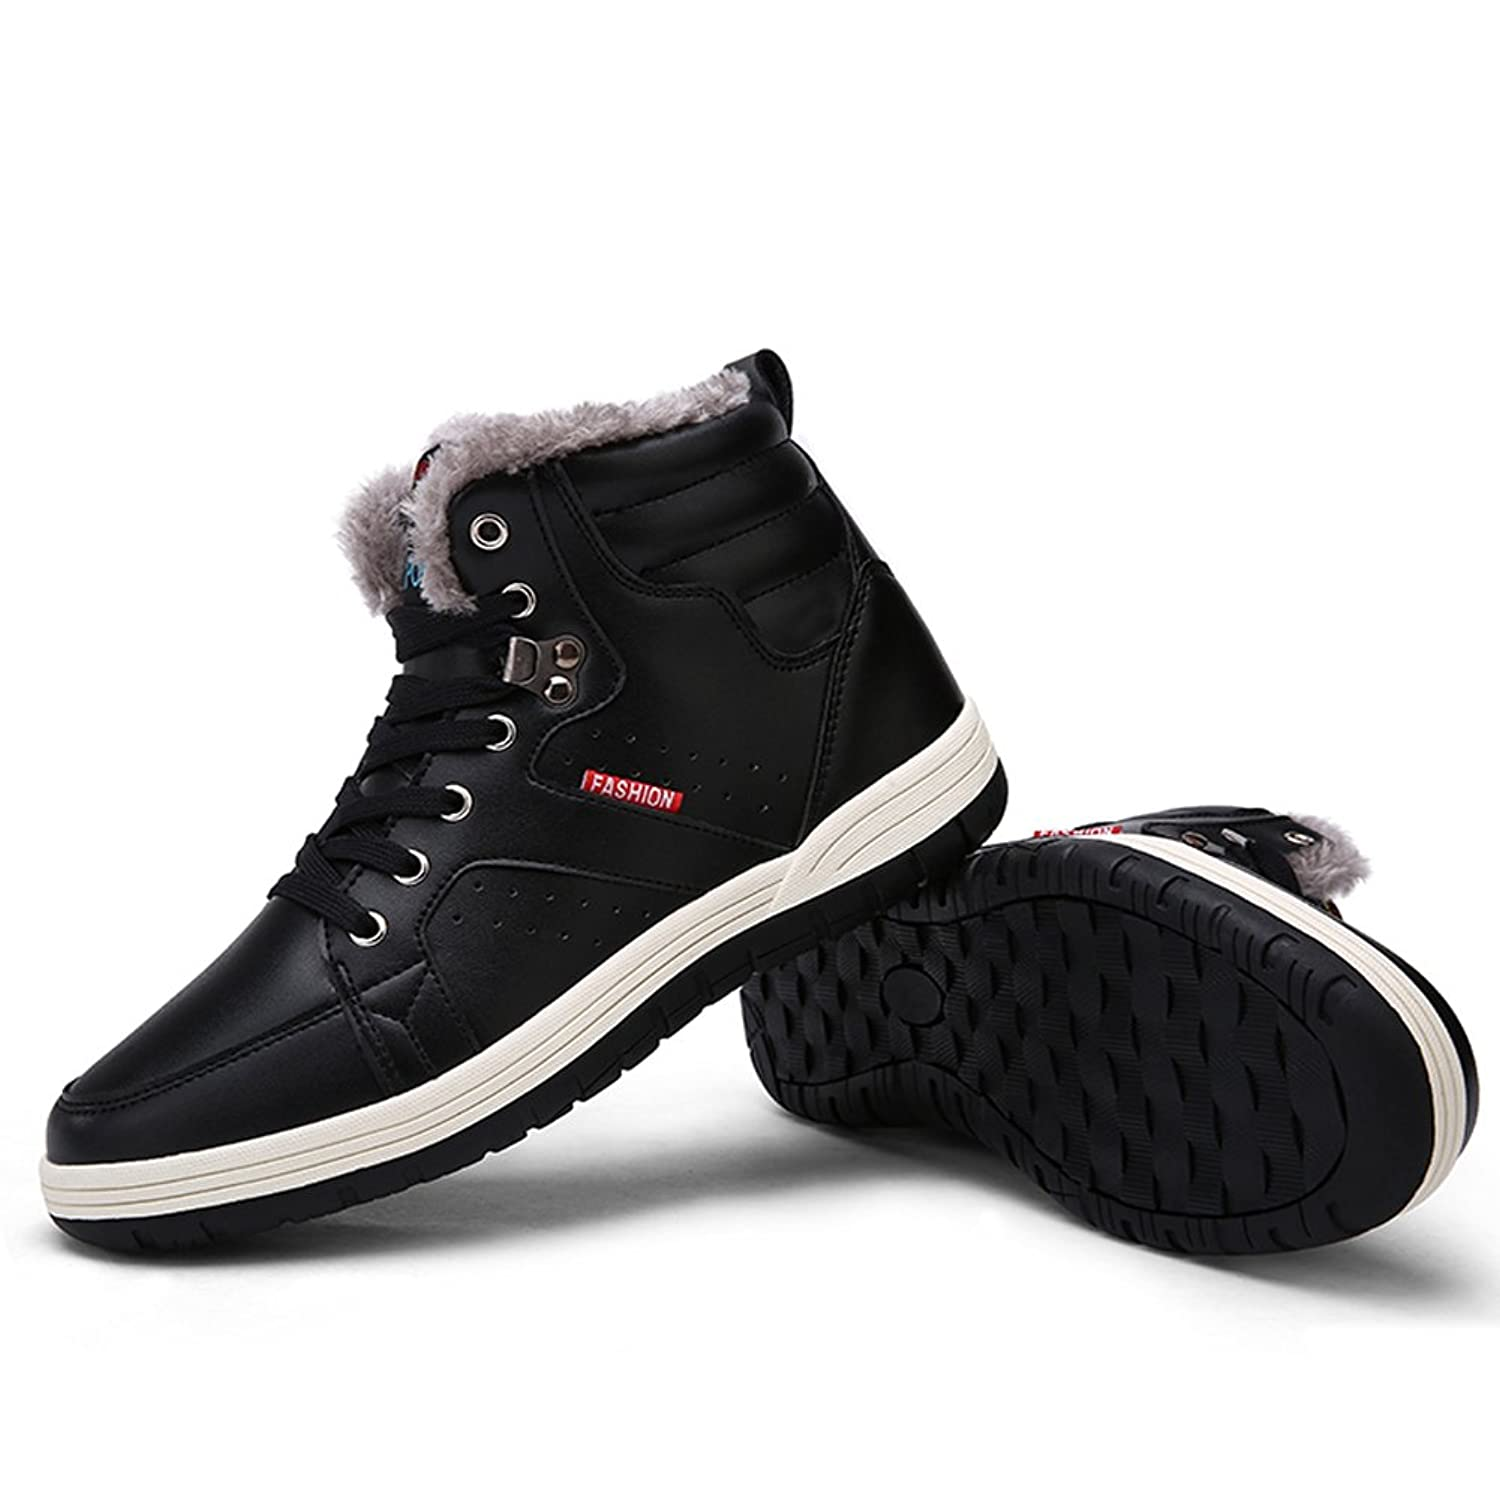 Fung-wong Men's Waterproof Snow Boots Fur Lining Warm Leather Winter Shoes:  Amazon.ca: Shoes & Handbags